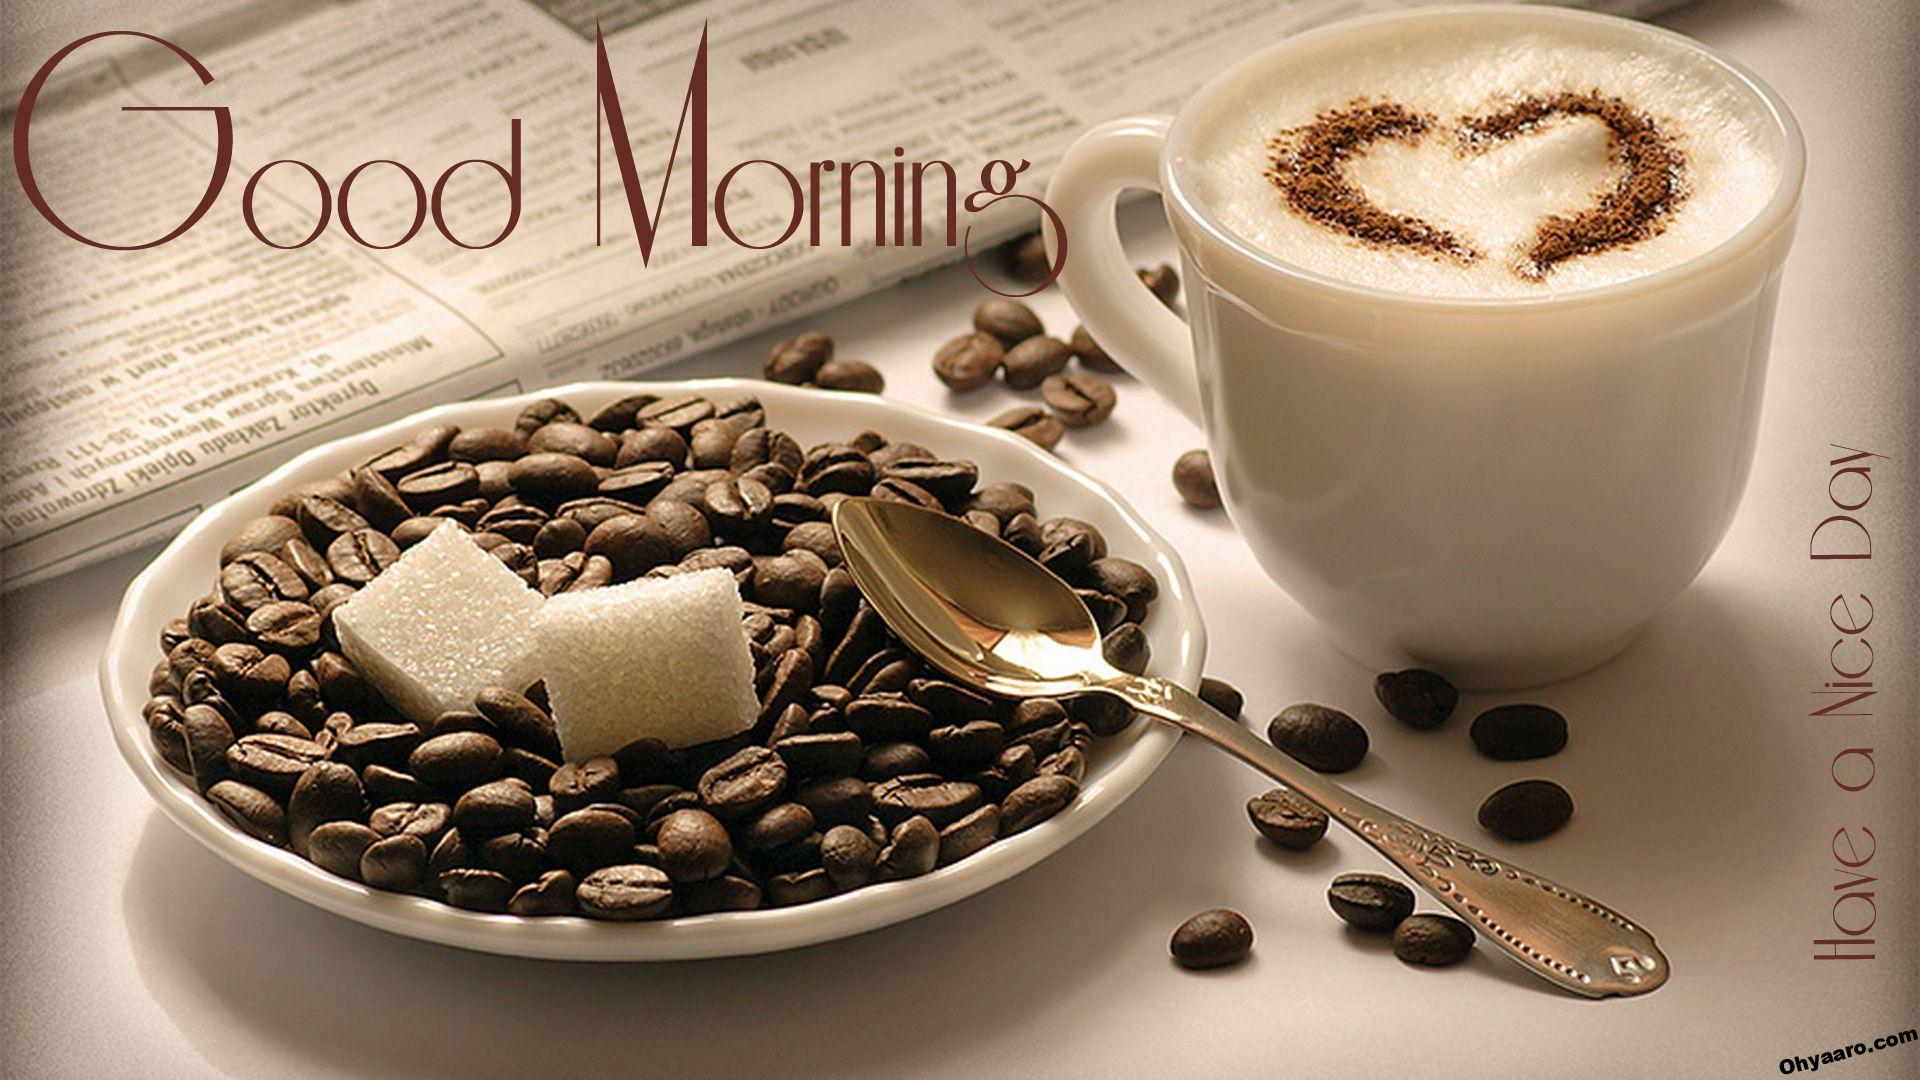 Good Morning Wallpaper with Coffee